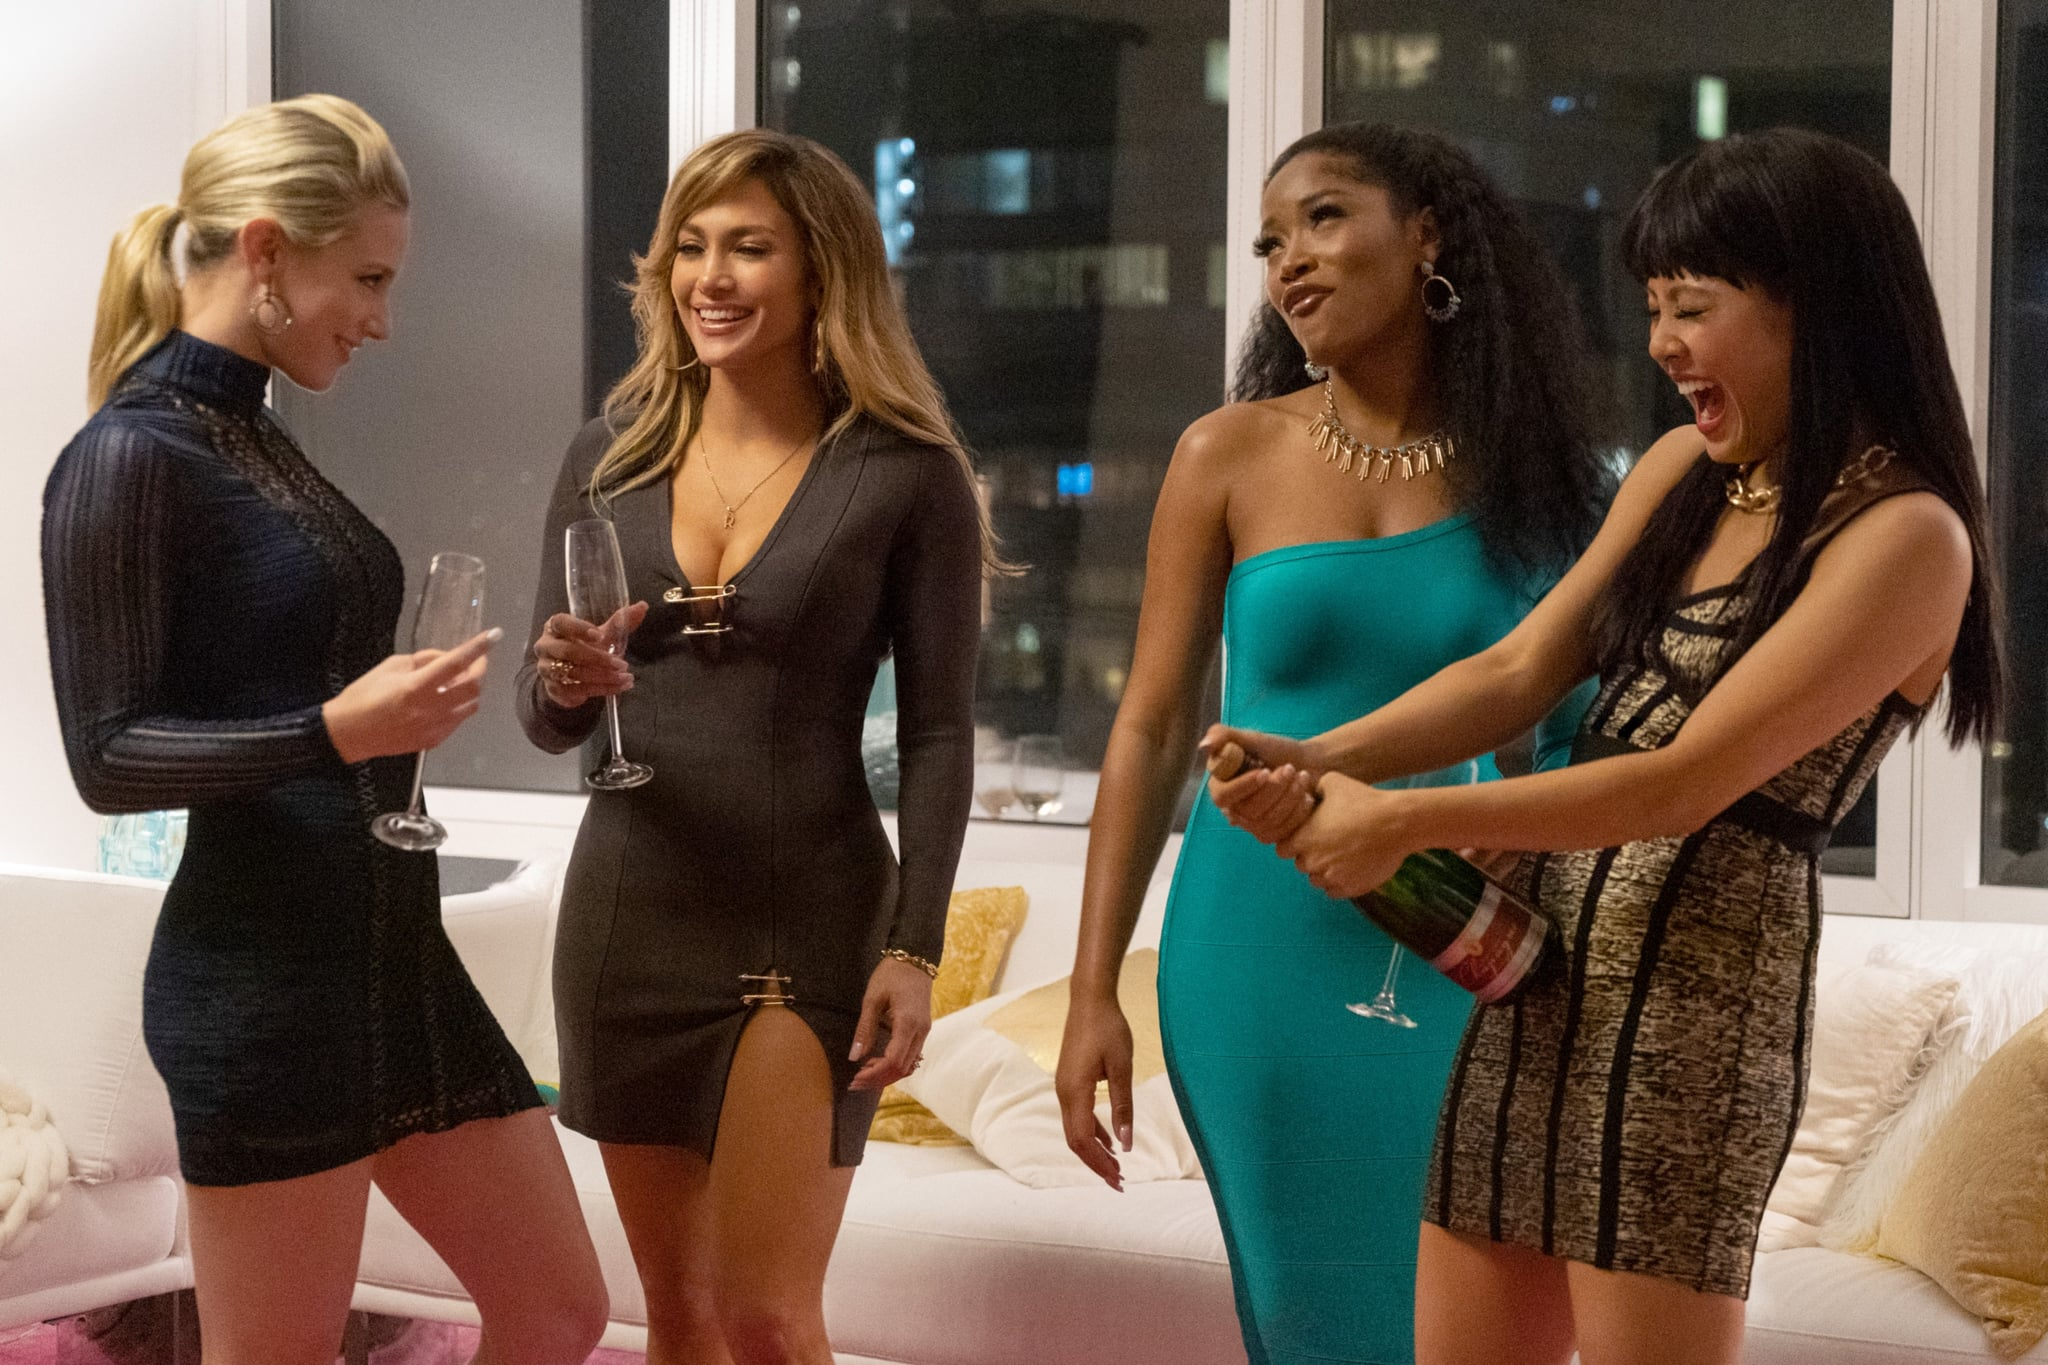 HUSTLERS, from left: Lili Reinhart, Jennifer Lopez, Keke Palmer, Constance Wu, 2019. ph: Barbara Nitke /  STX Entertainment / courtesy Everett Collection